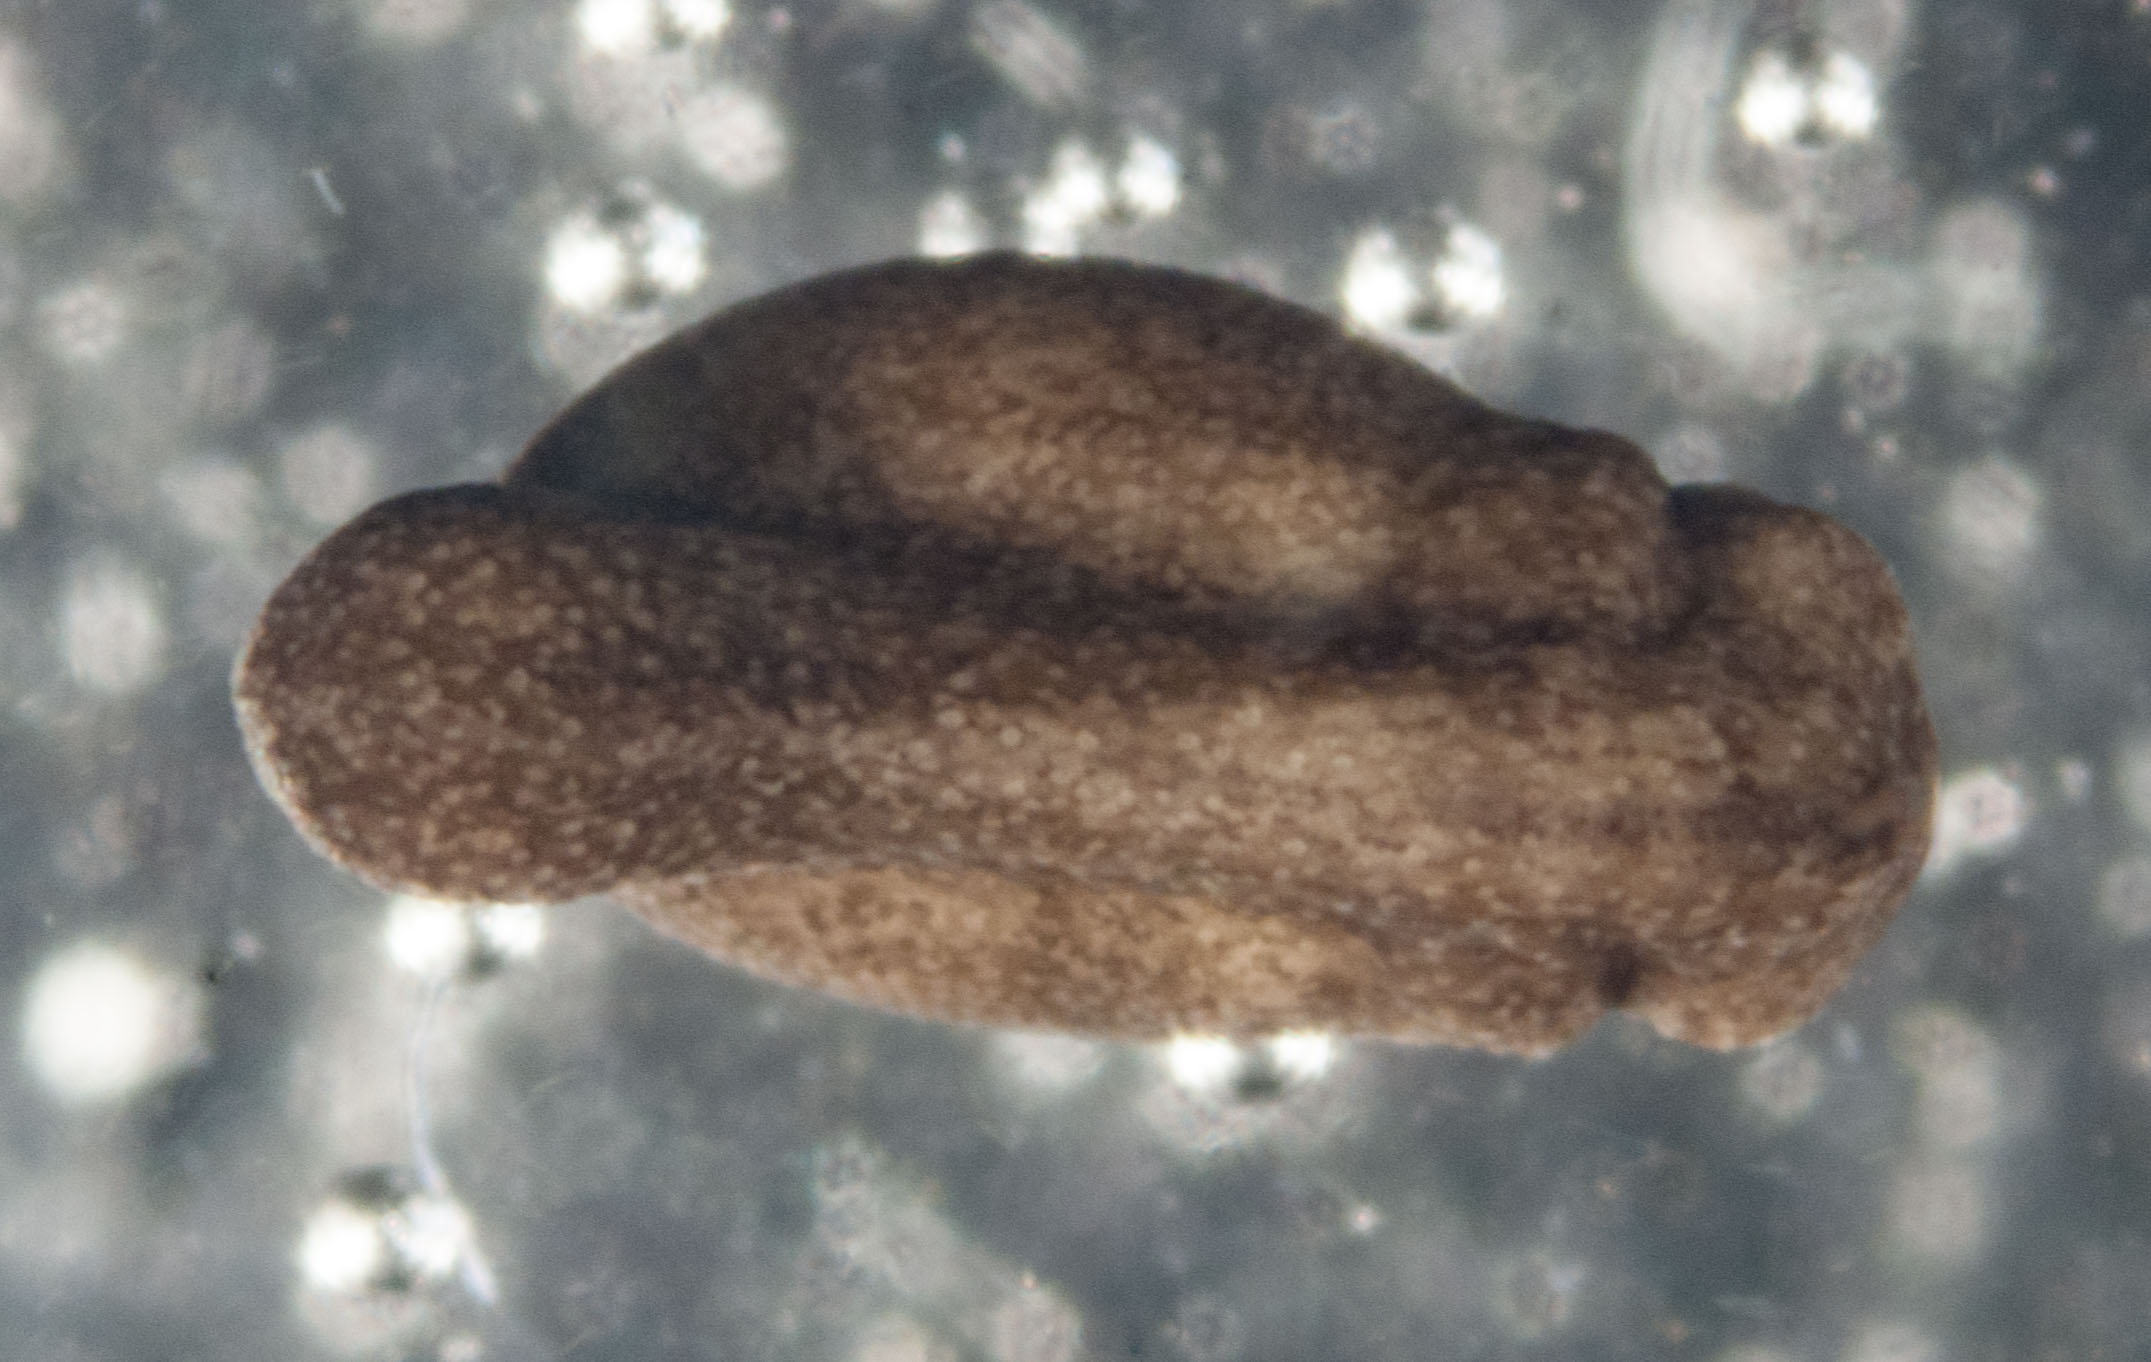 The same embryo viewed from above. The ridge along the back marks the developing spinal cord, while the bulges on each side at the right end show where the brain is developing.